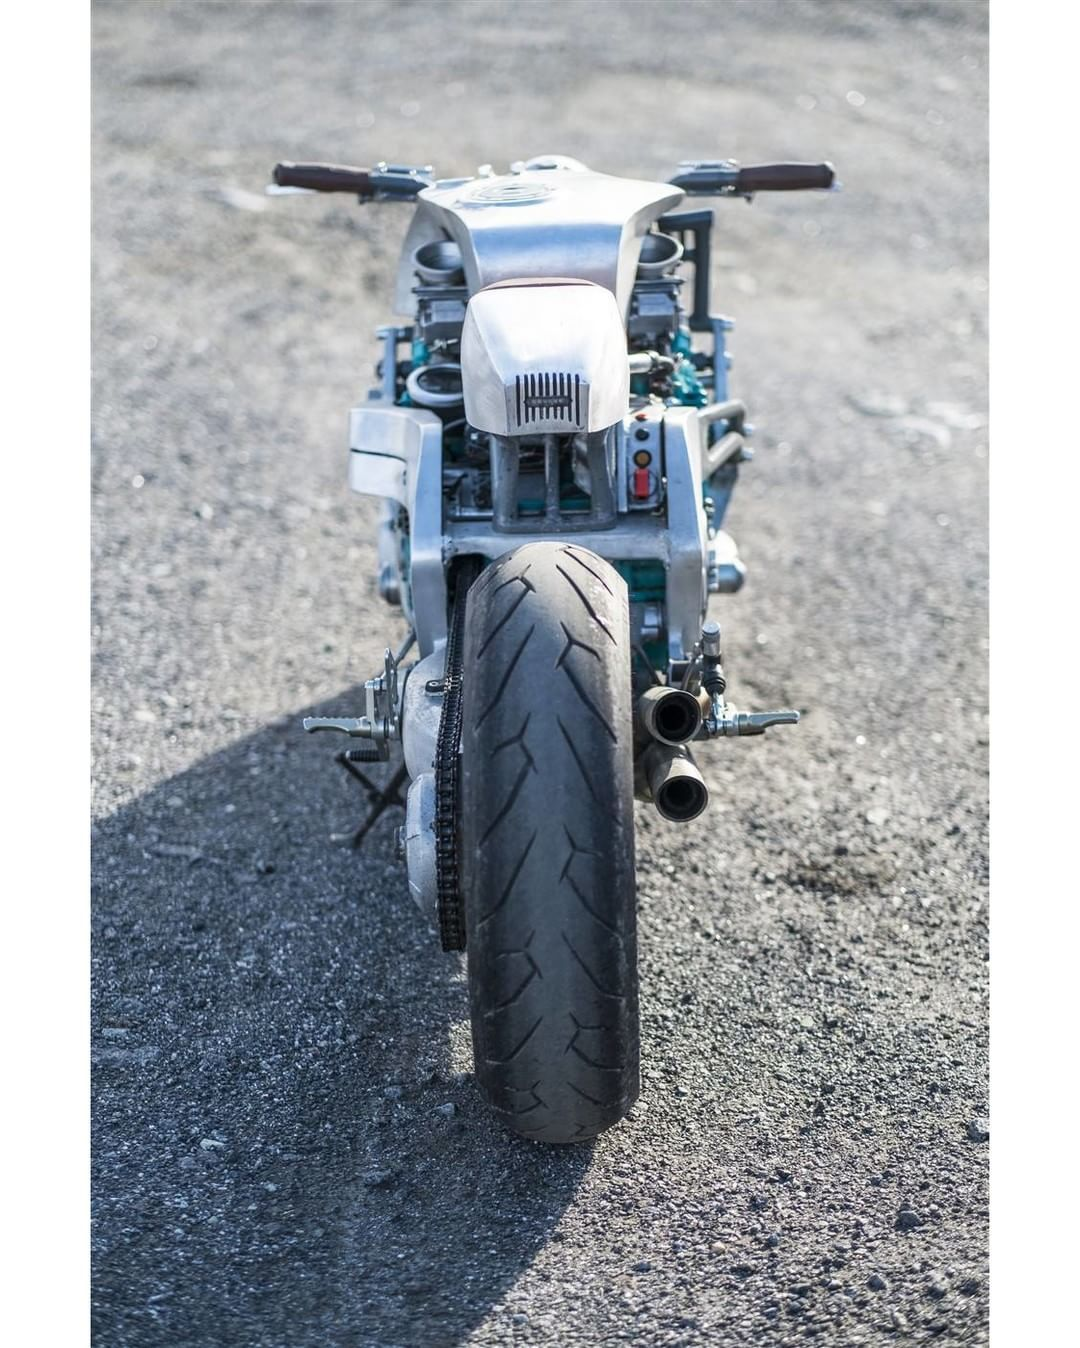 GTS 1000 Cafe Racer Scheffers Engineering - Photo by Marcos Meisner #motorcycles #caferacer #motos   caferacerpasion.com